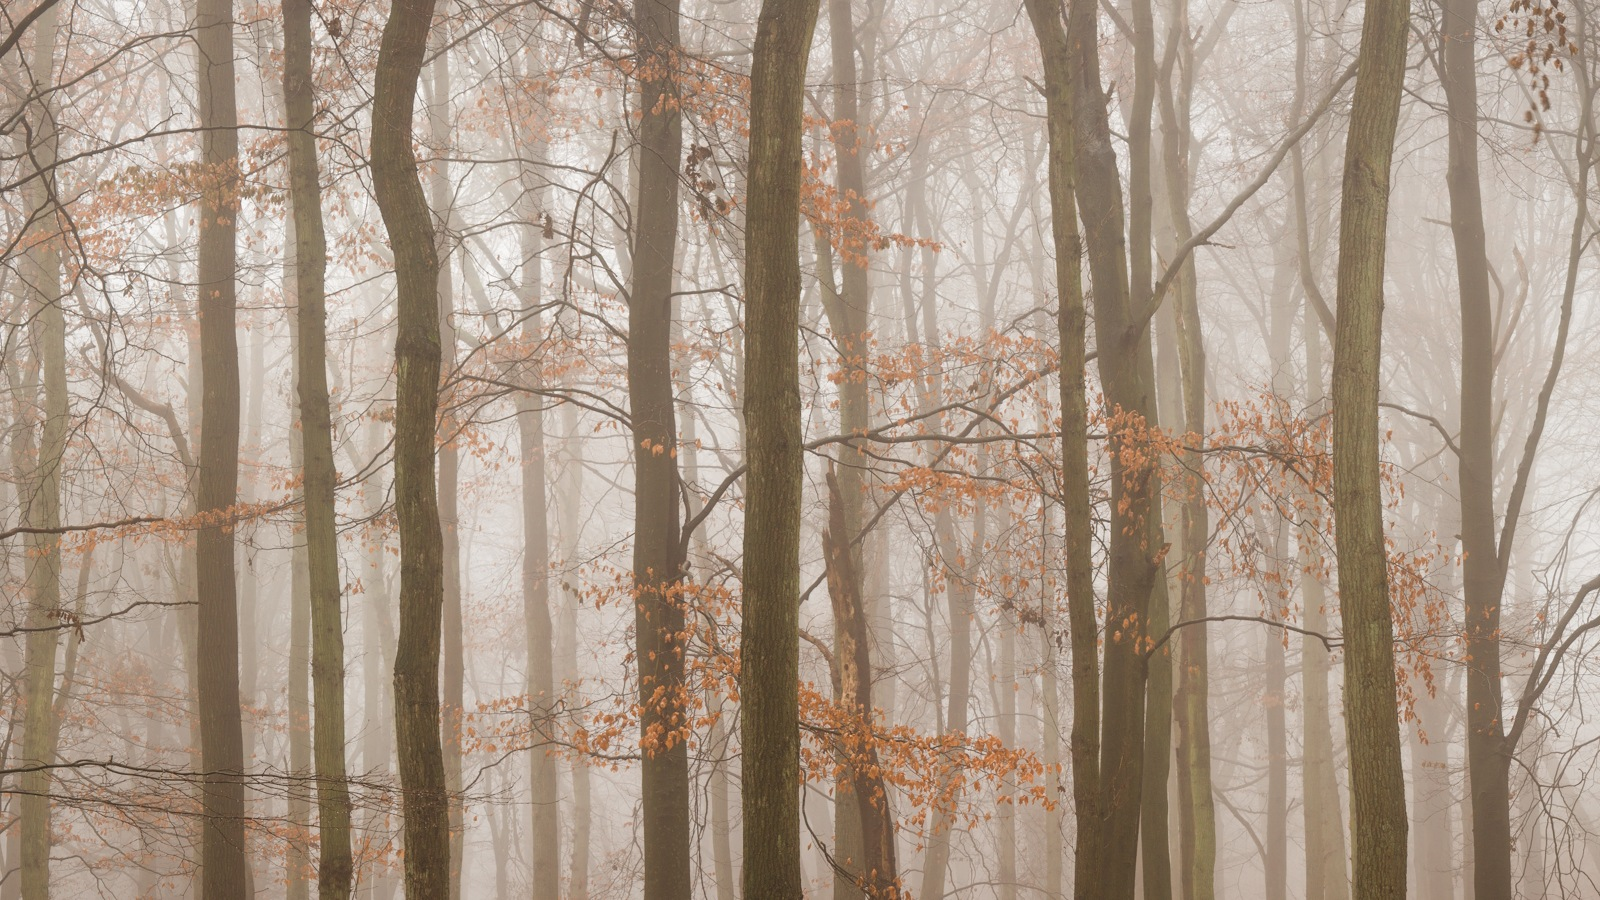 Dockey Woods by Brian Roberts